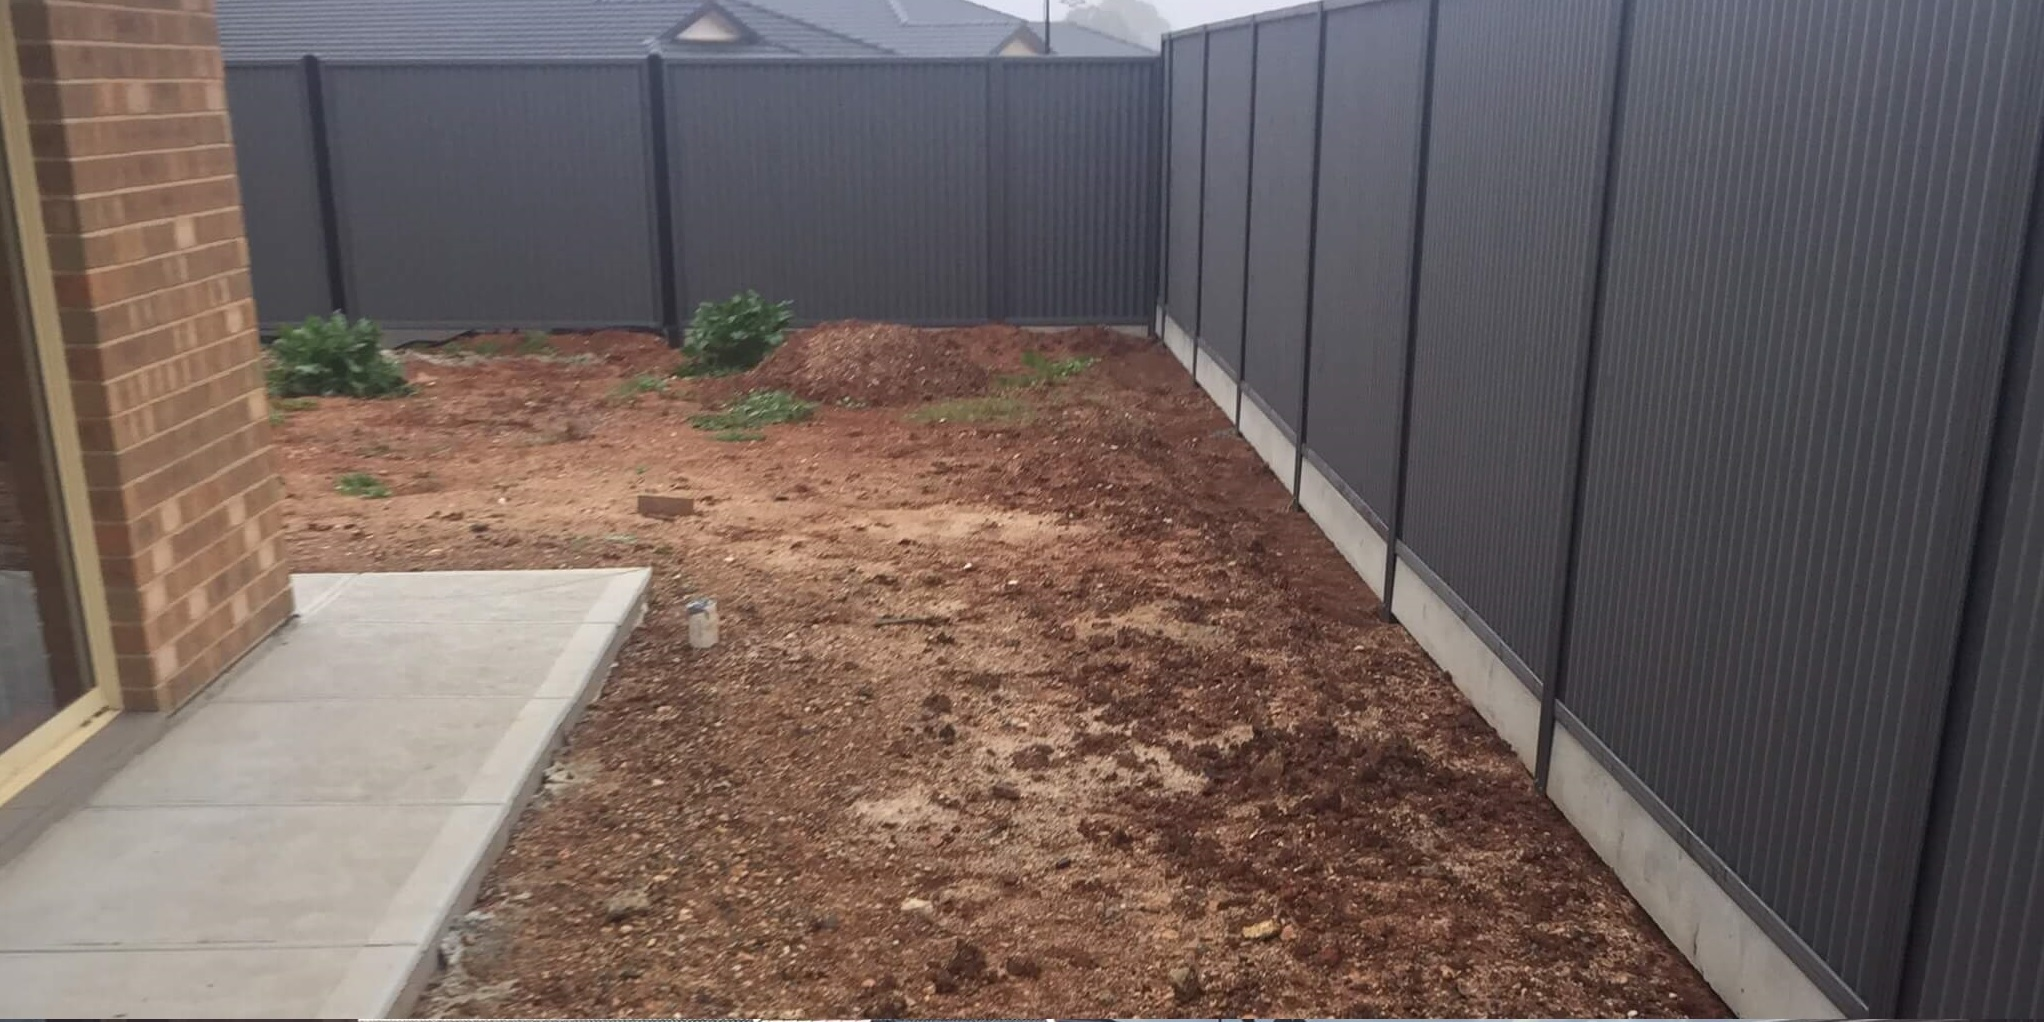 Salisbury - Getting the ground ready for a paved backyard interspersed with a grassed area